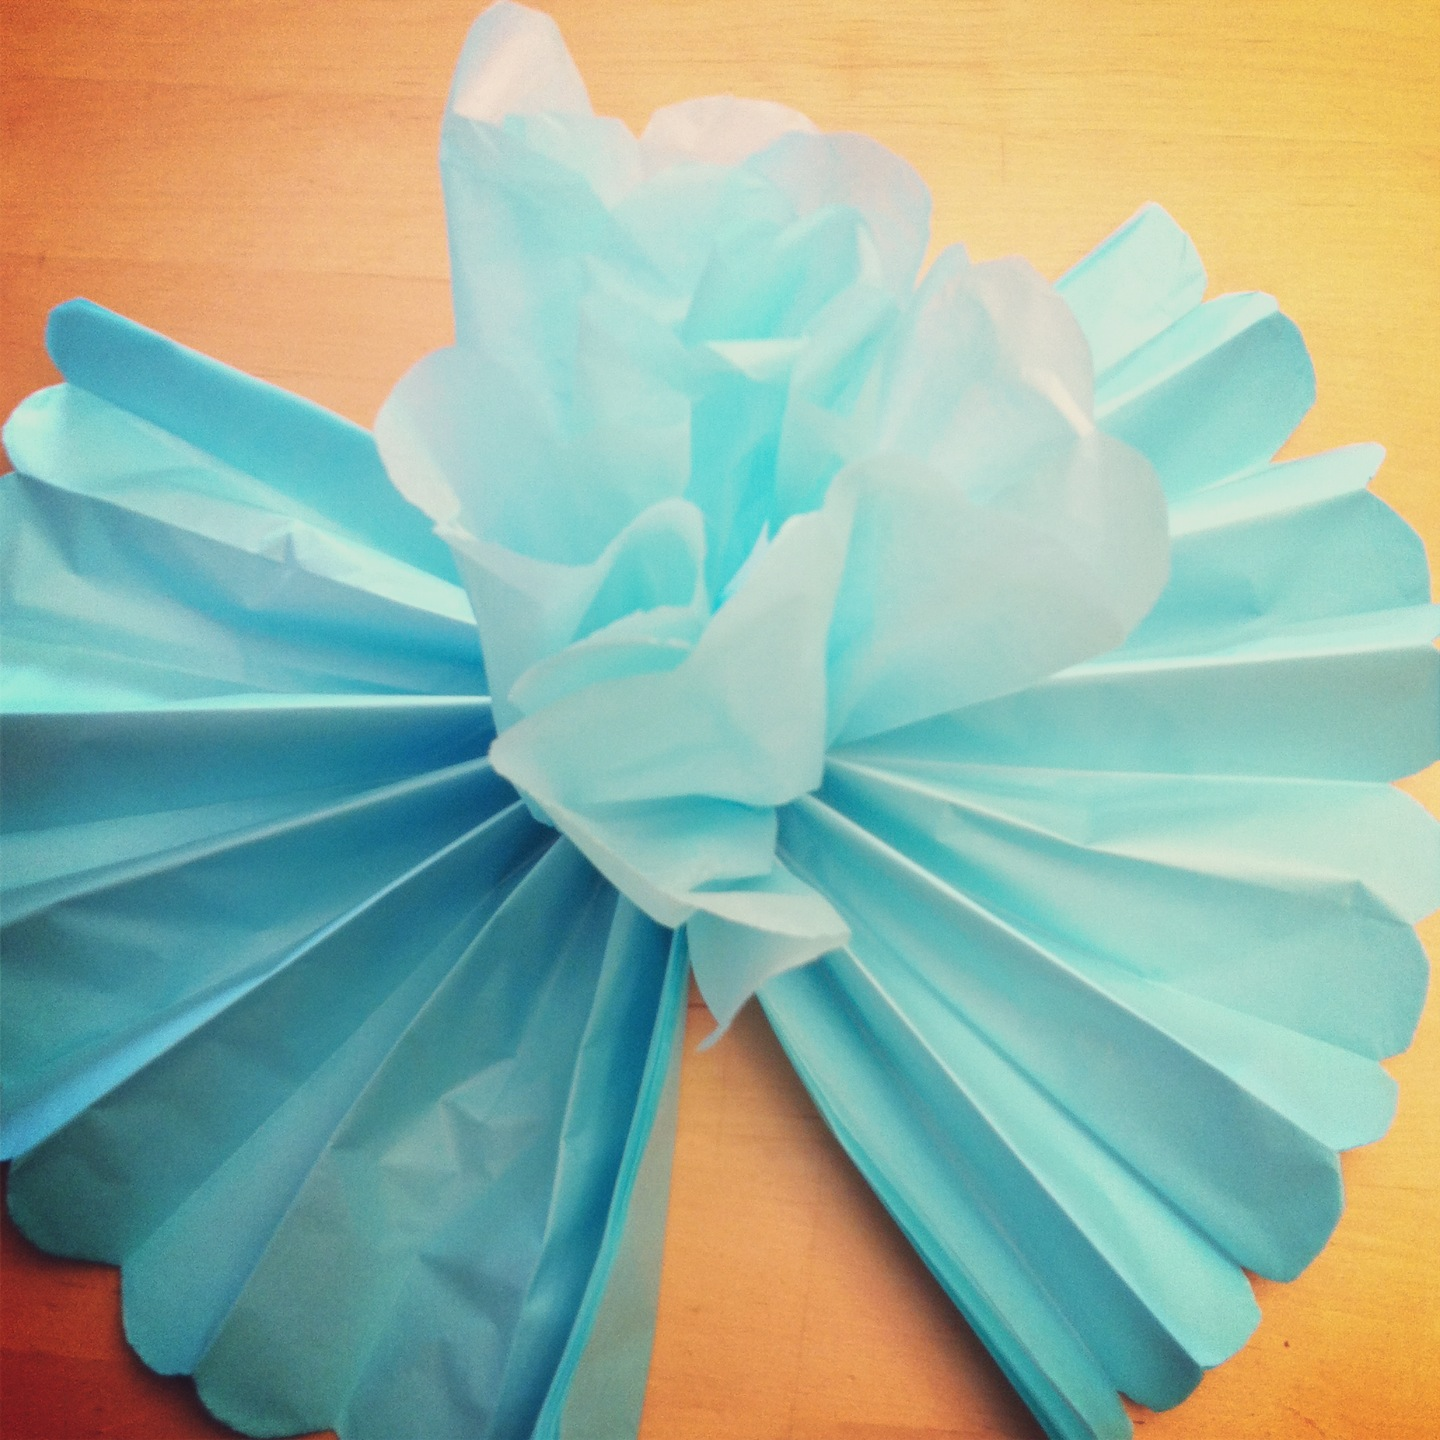 large tissue paper flowers for sale Find large paper flowers decorations ads buy and sell almost anything on gumtree classifieds.